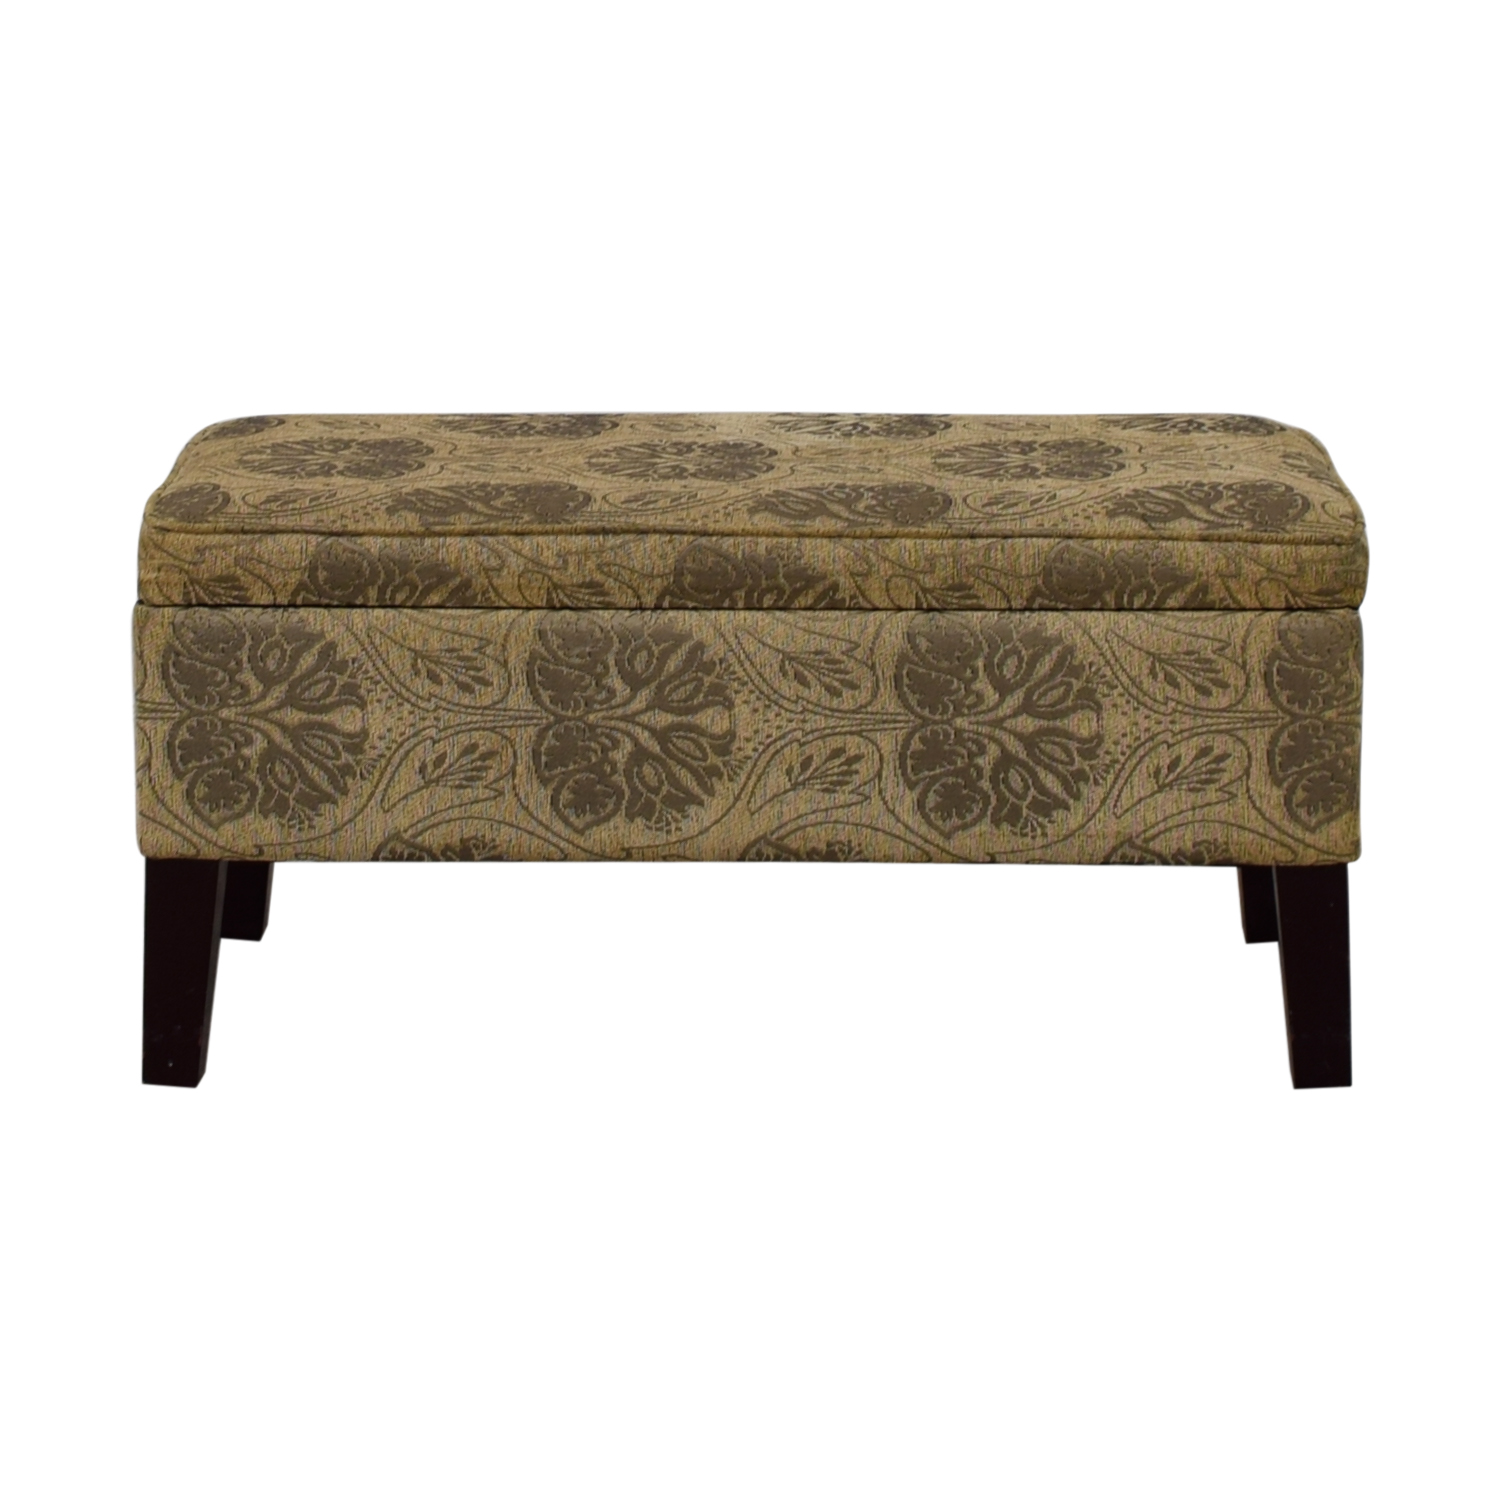 T J Max T J Max Beige and Grey Fabric Ottoman for sale